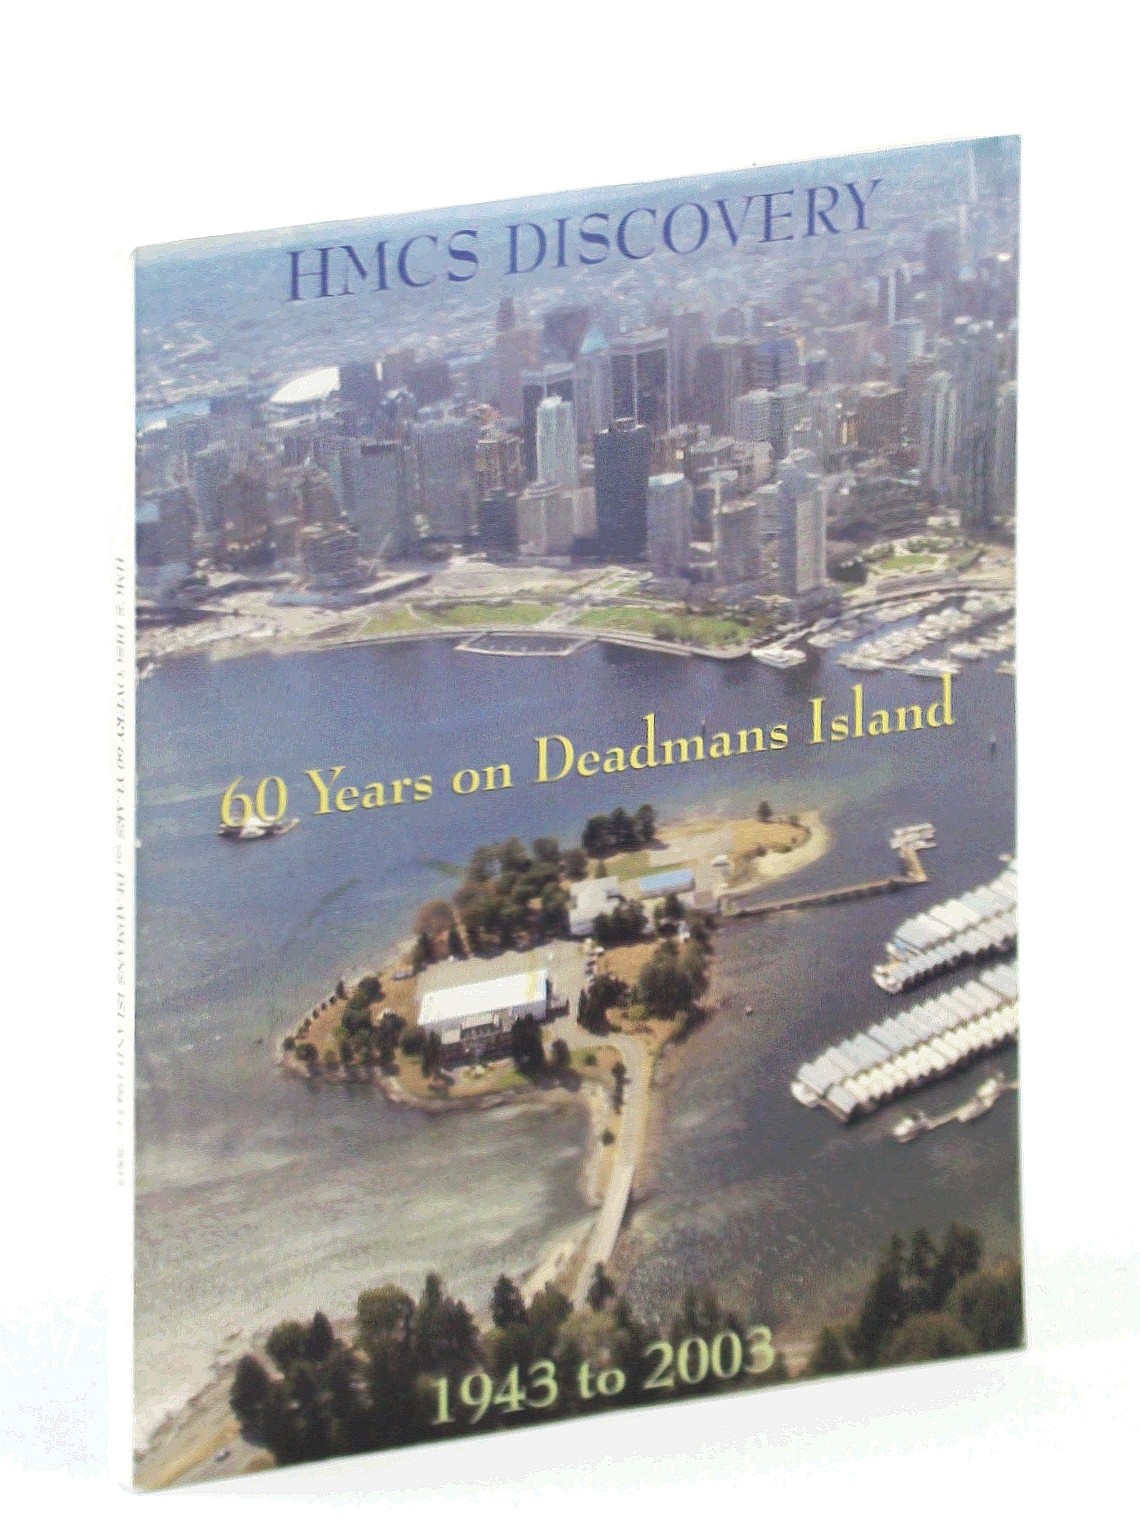 Image for HMCS Discovery - 60 Years on Deadmans Island 1943 to 2003